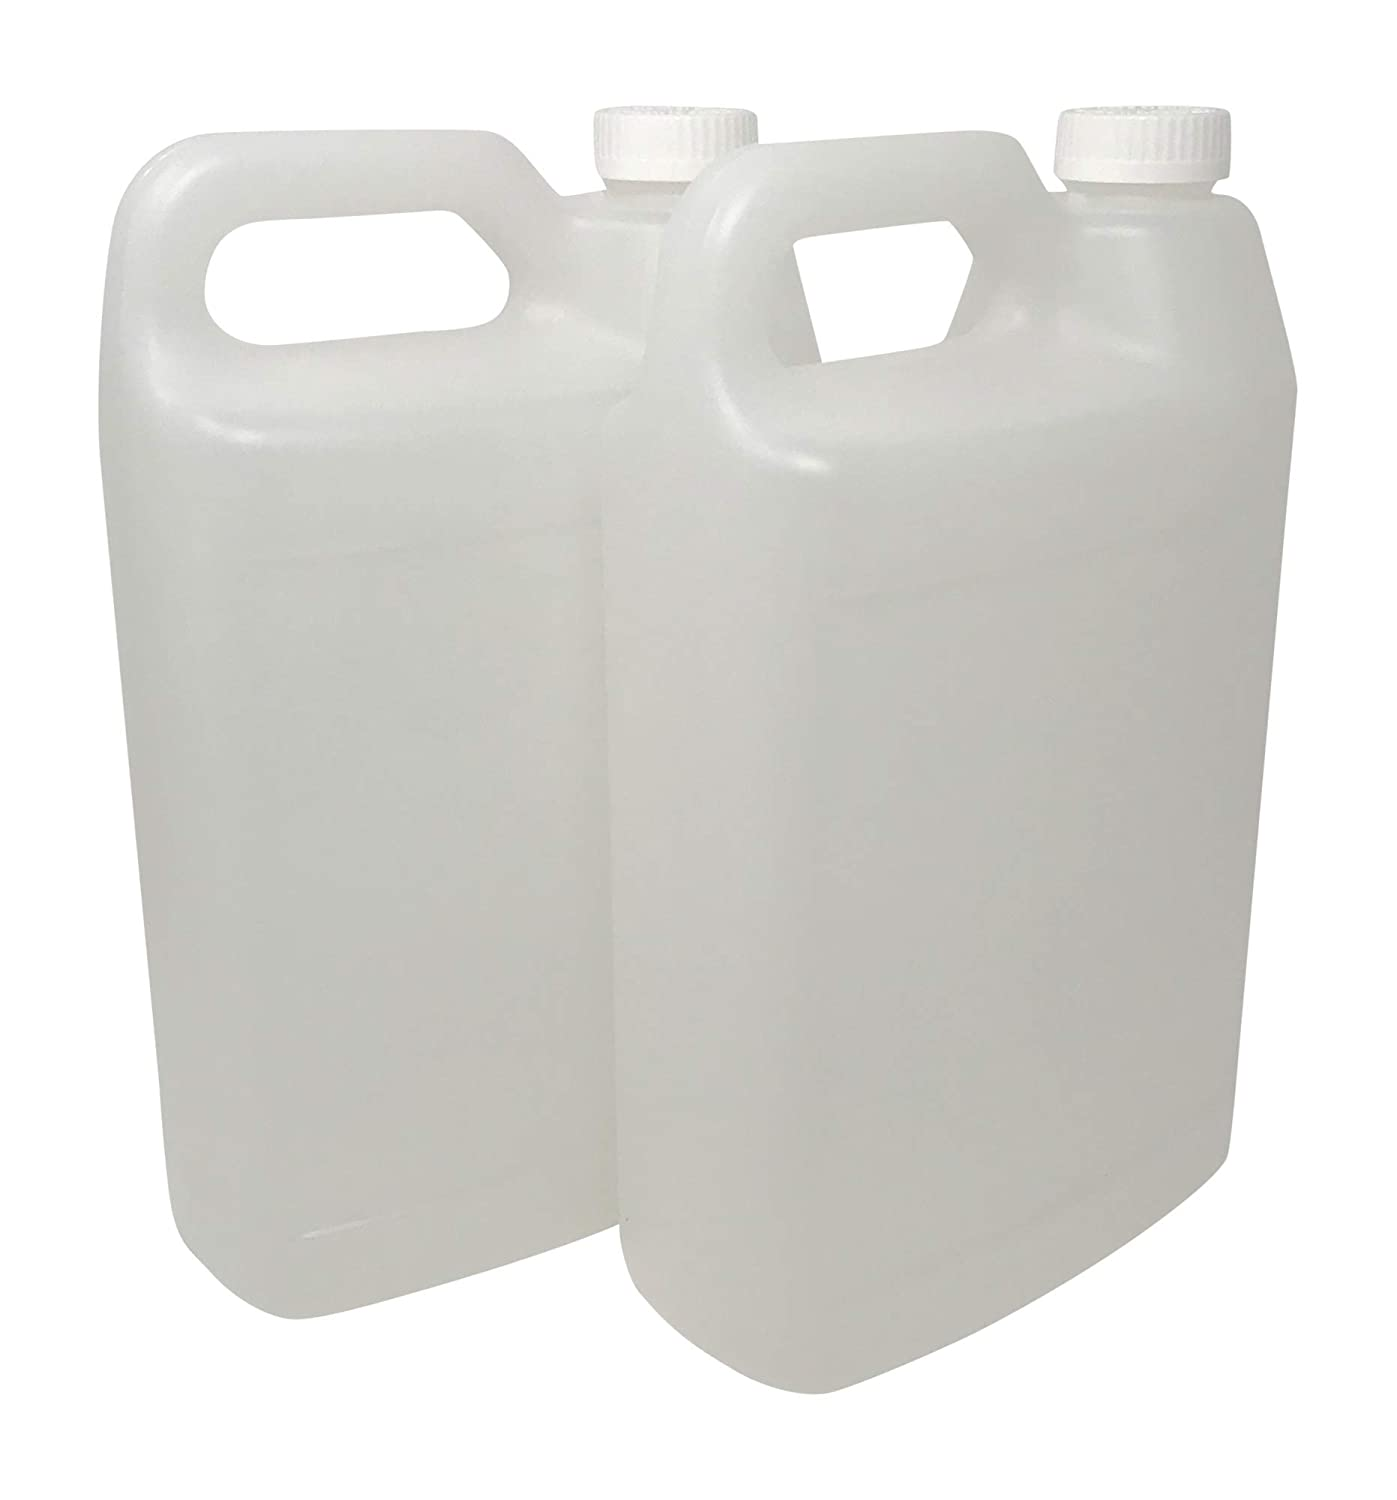 Made in USA CSBD 1 Gallon Plastic F-Style Jugs with Child Resistant Lids F-Style Residential and Commercial Uses HDPE Plastic 2, 1 Gallon BPA Free